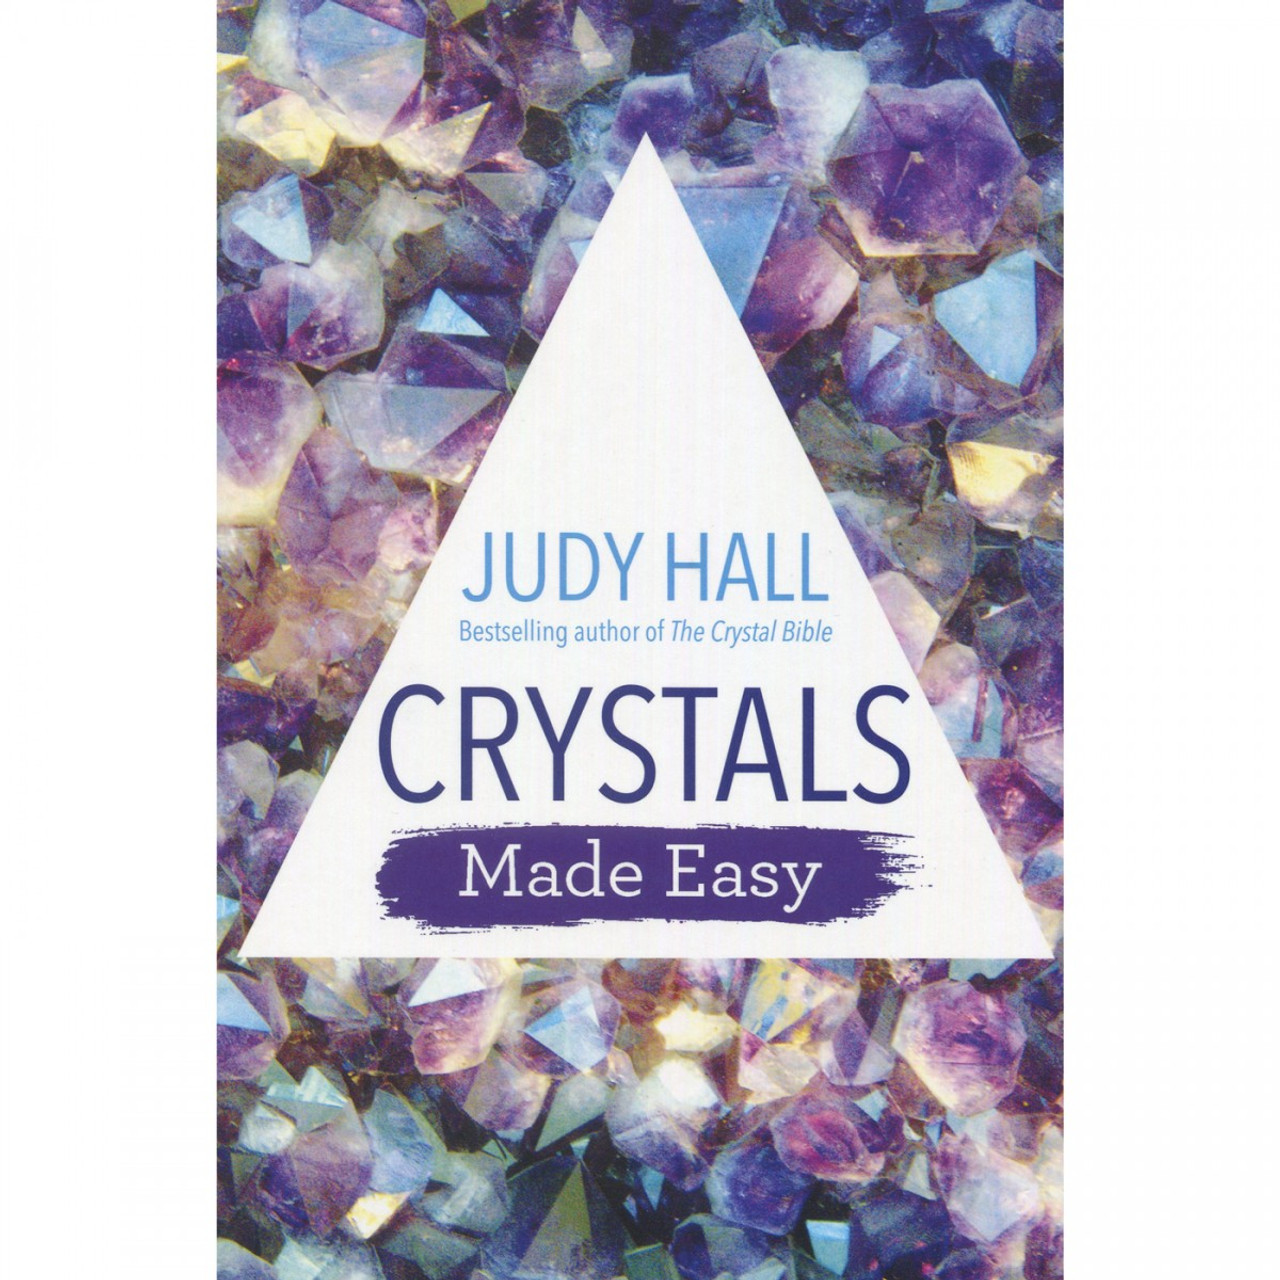 Crystals Made Easy by Judy Hall